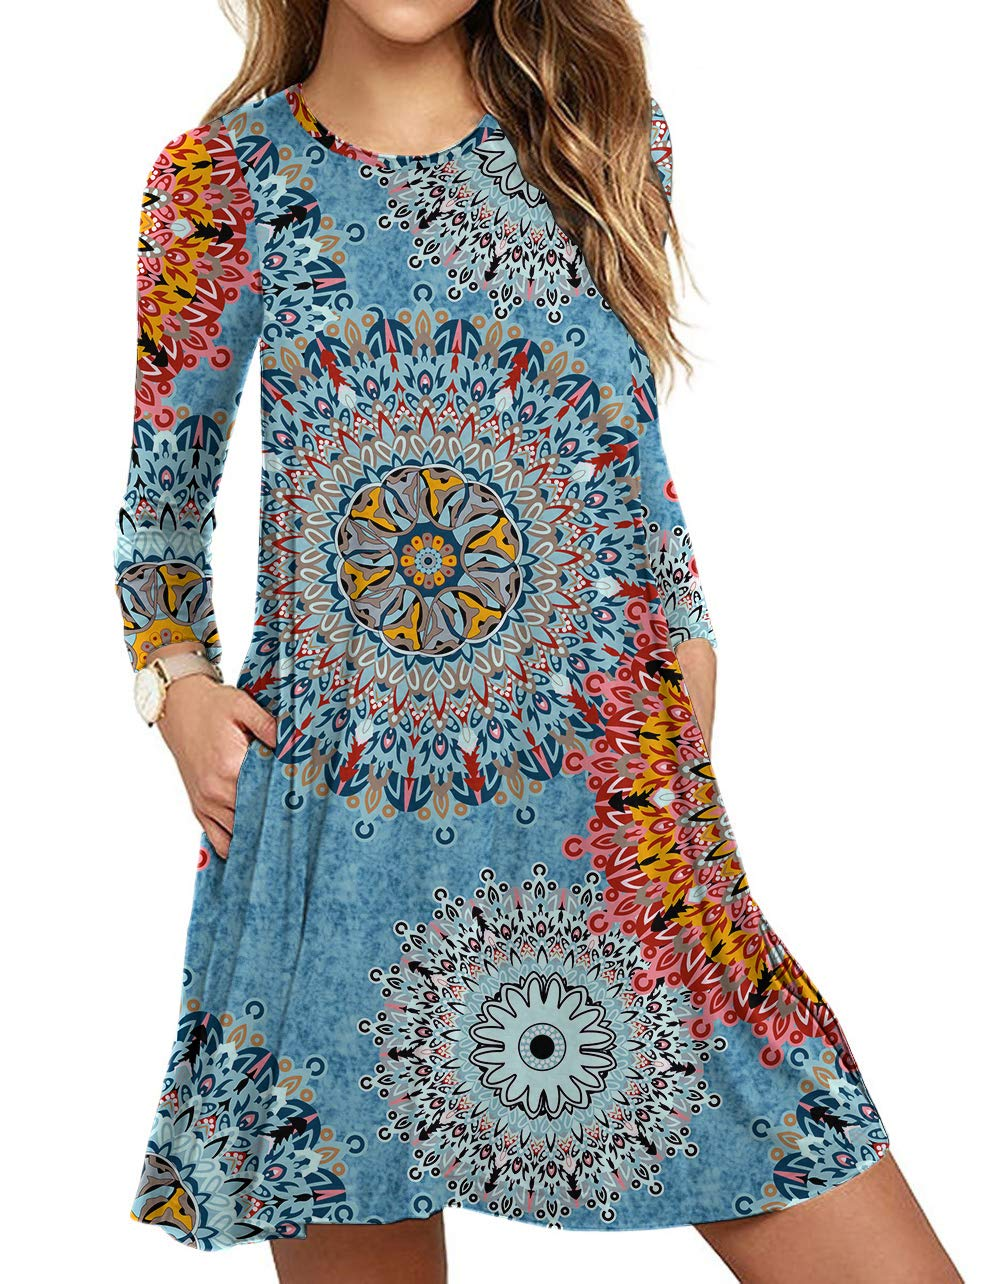 Womens Comfy Swing Tunic Long Sleeve Pocket Floral Print T-Shirt Dress Floral Mix Blue Medium - wiihuu